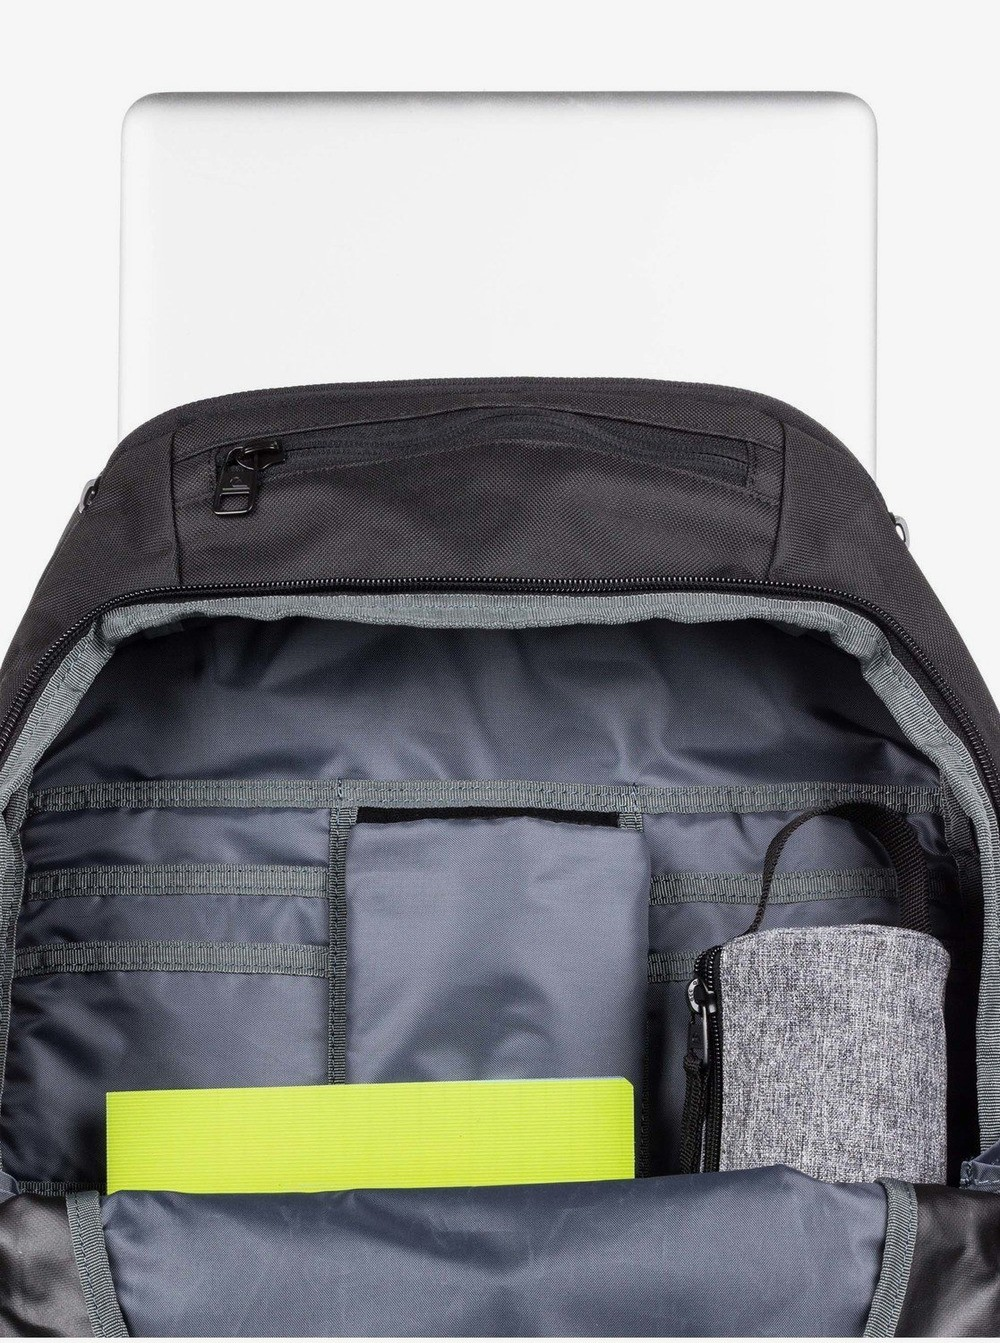 last chance 1969 special 28l large backpack - black best price limited sale